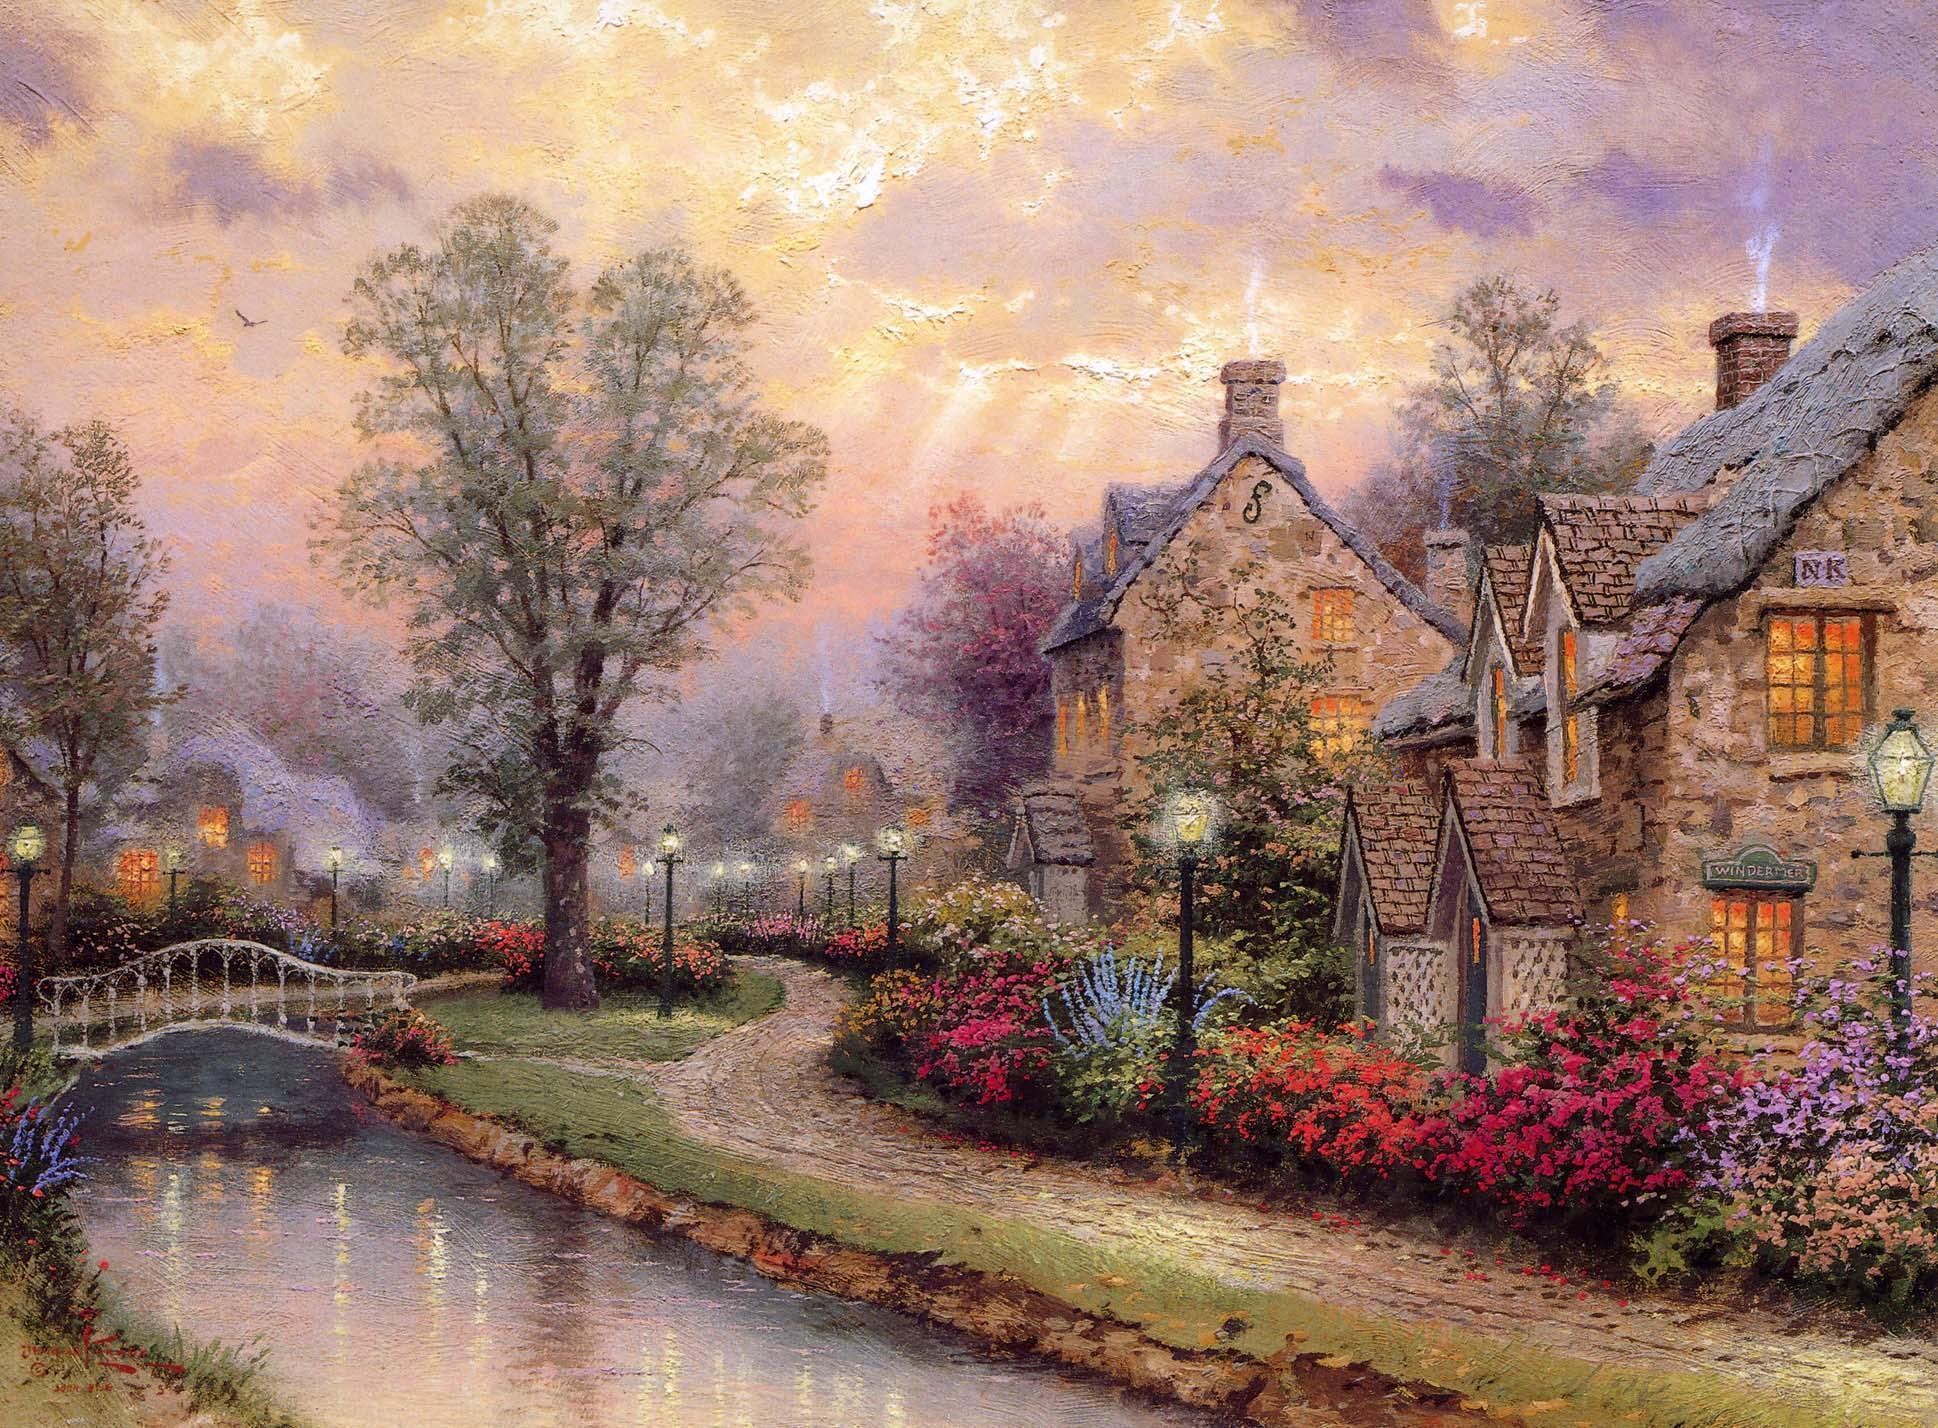 thomas kinkade wallpaper 1920x1080 - photo #3